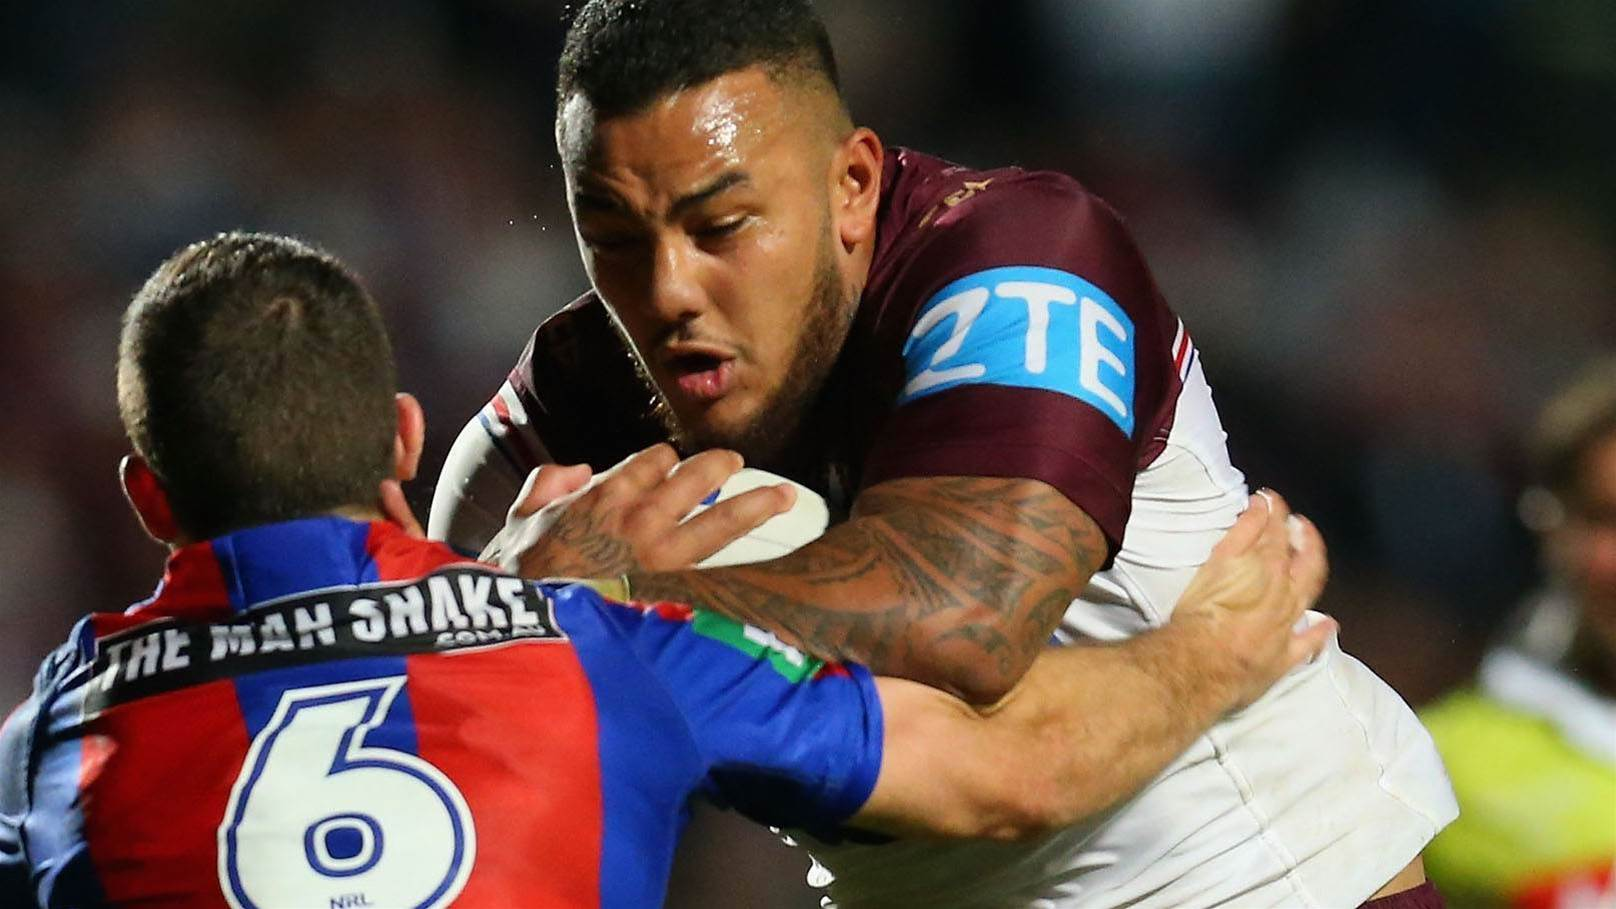 Manly add depth to forwards with key signing